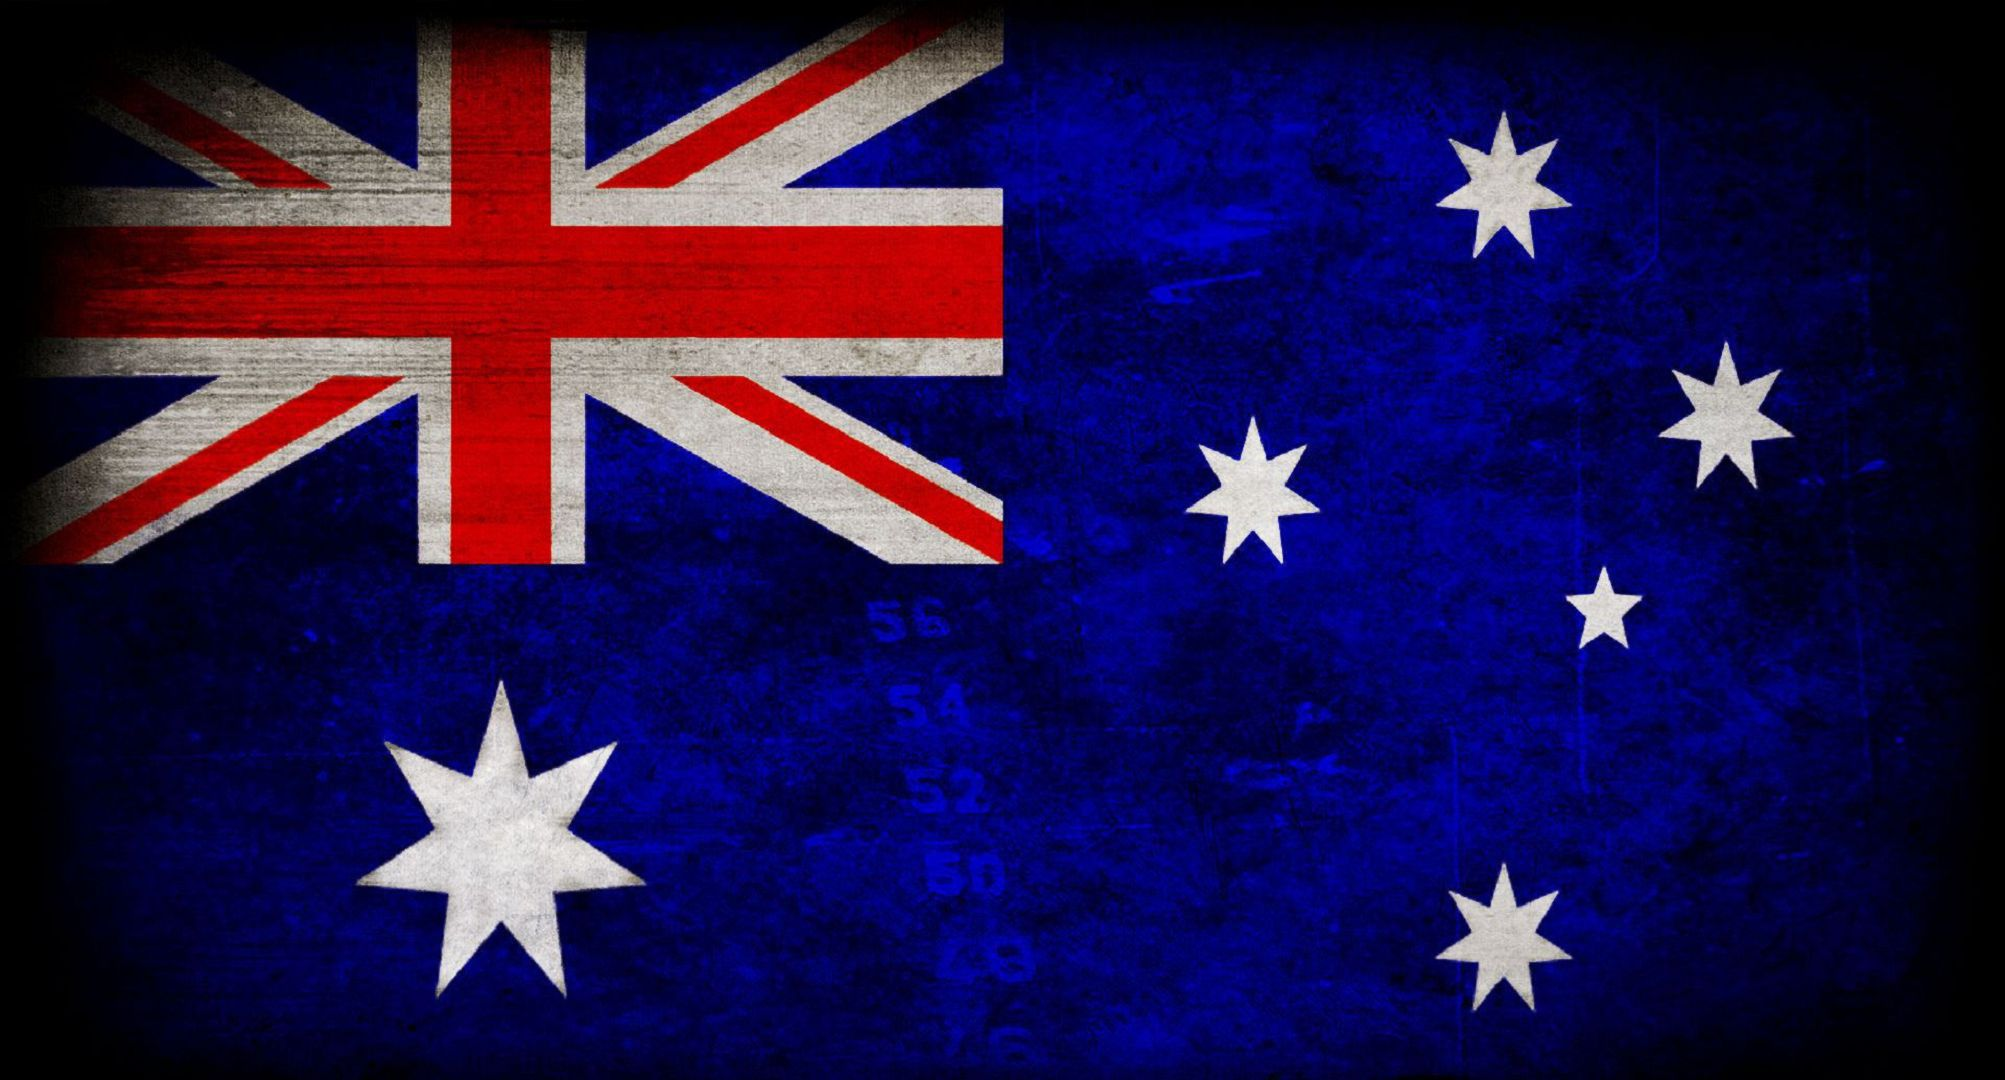 Australia Flag Wallpapers Backgrounds 2005x1080